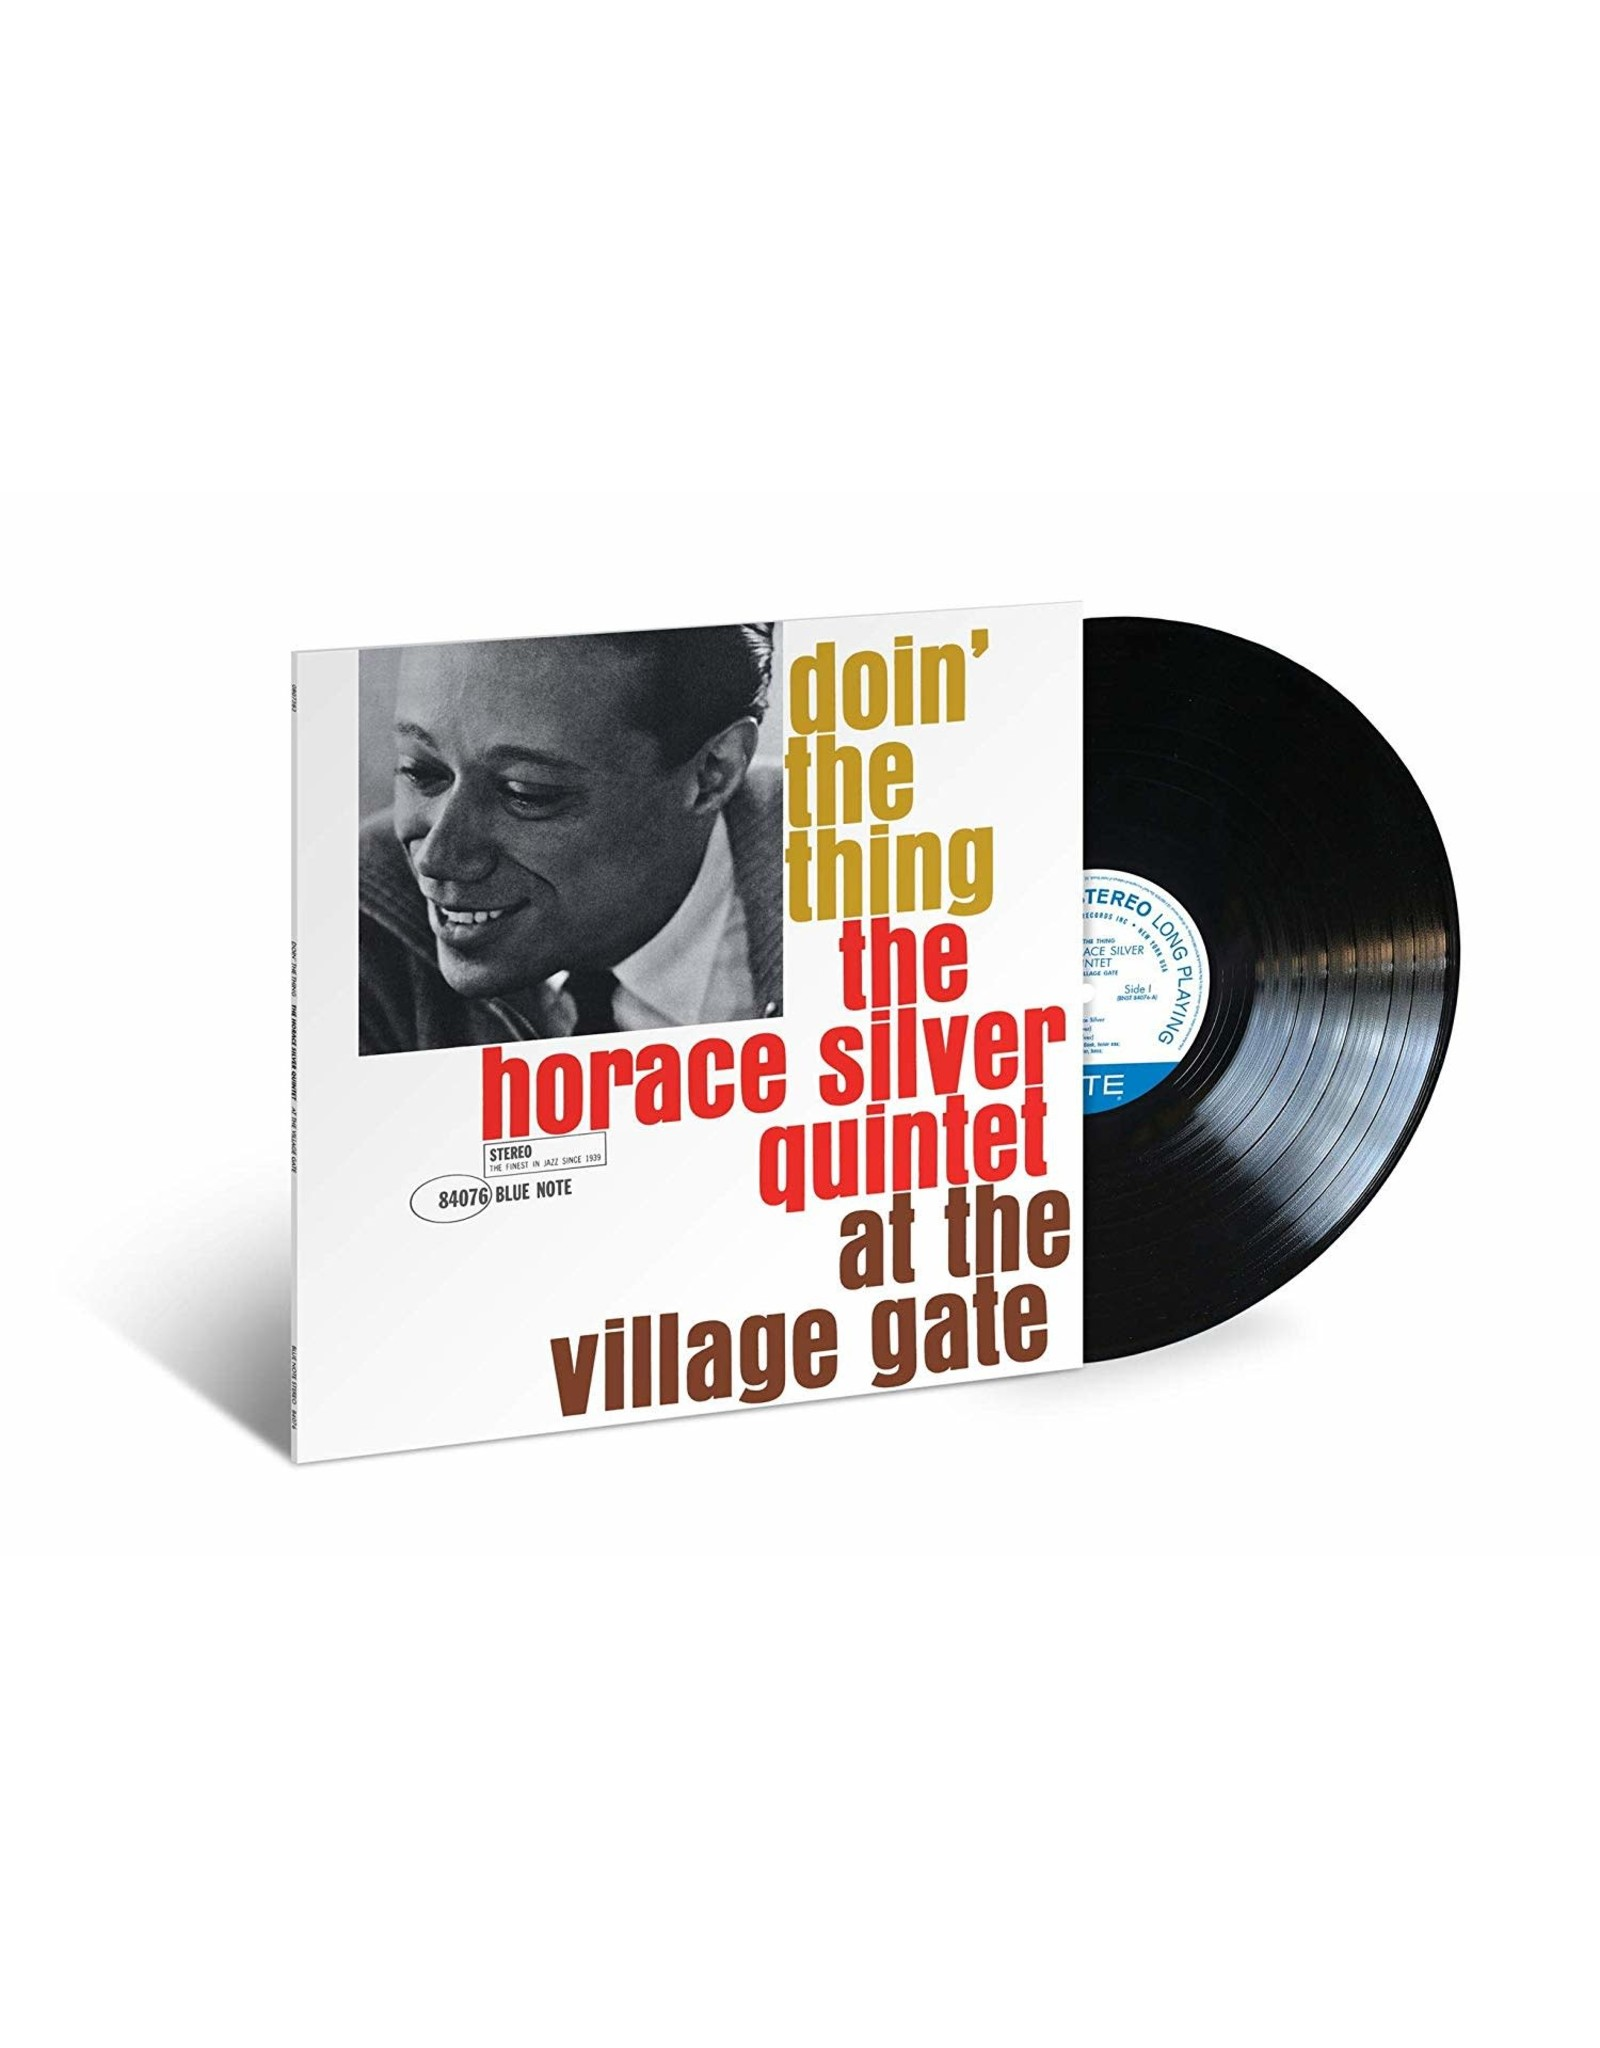 Horace Silver Quintet - Doin' The Thing